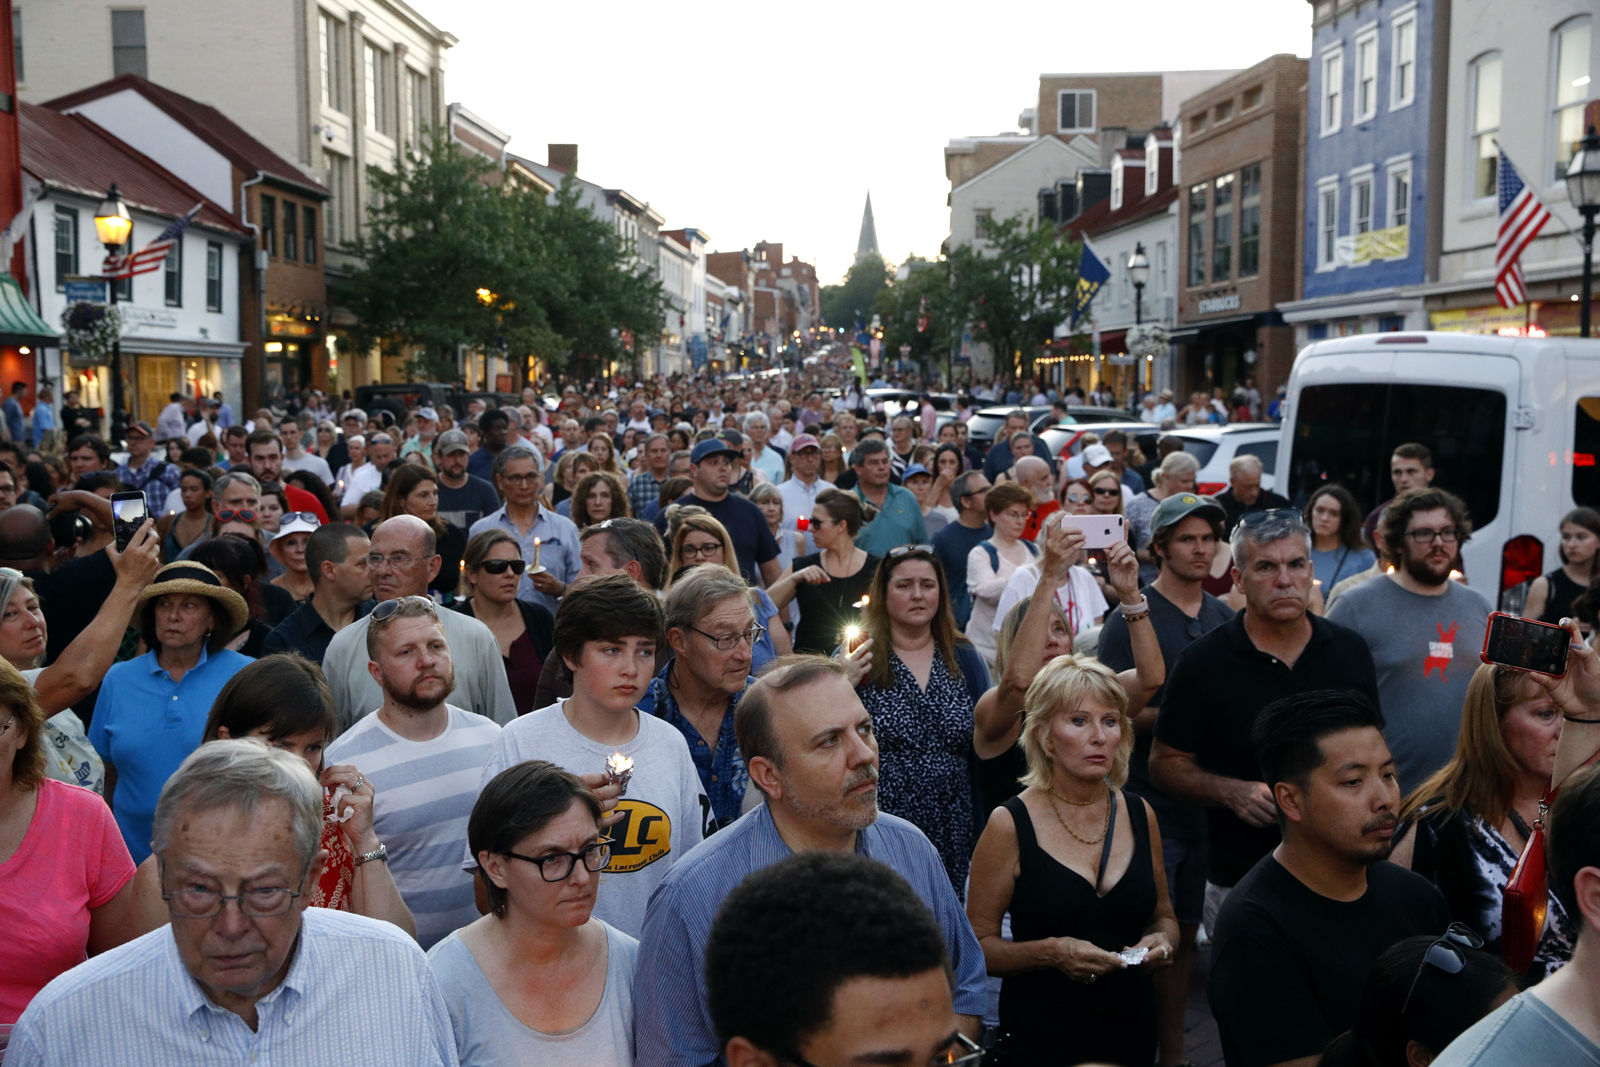 Mourners walk during a vigil in response to a shooting at The Capital Gazette newspaper office, Friday, June 29, 2018, in Annapolis, Md. The suspect, Jarrod W. Ramos, is charged with five counts of first-degree murder in one of the deadliest attacks on journalists in U.S. history. (AP Photo/Patrick Semansky)